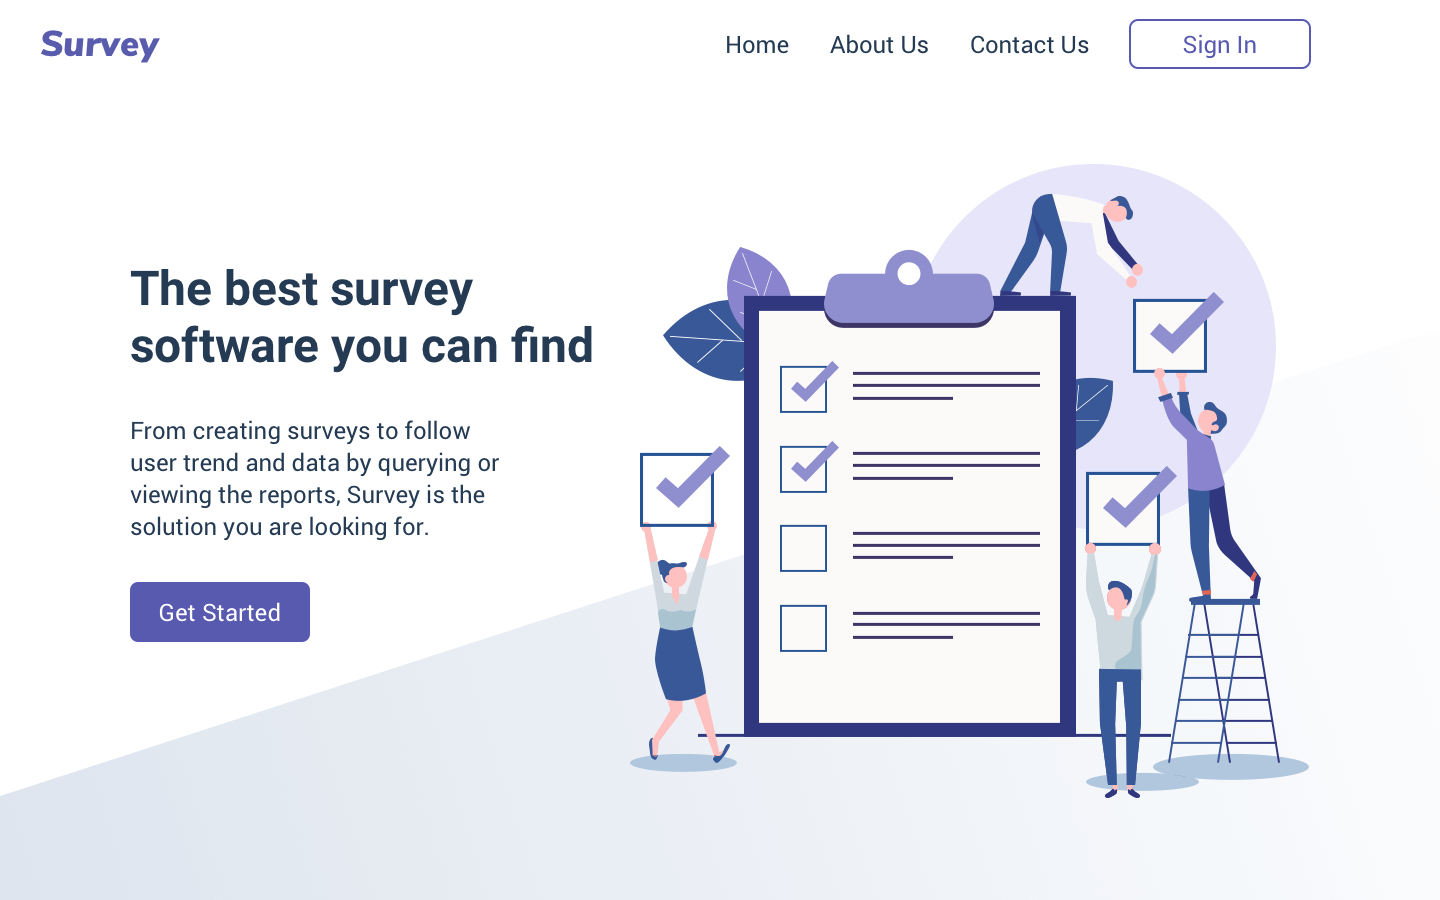 the-best-survey-software-you-can-find.png